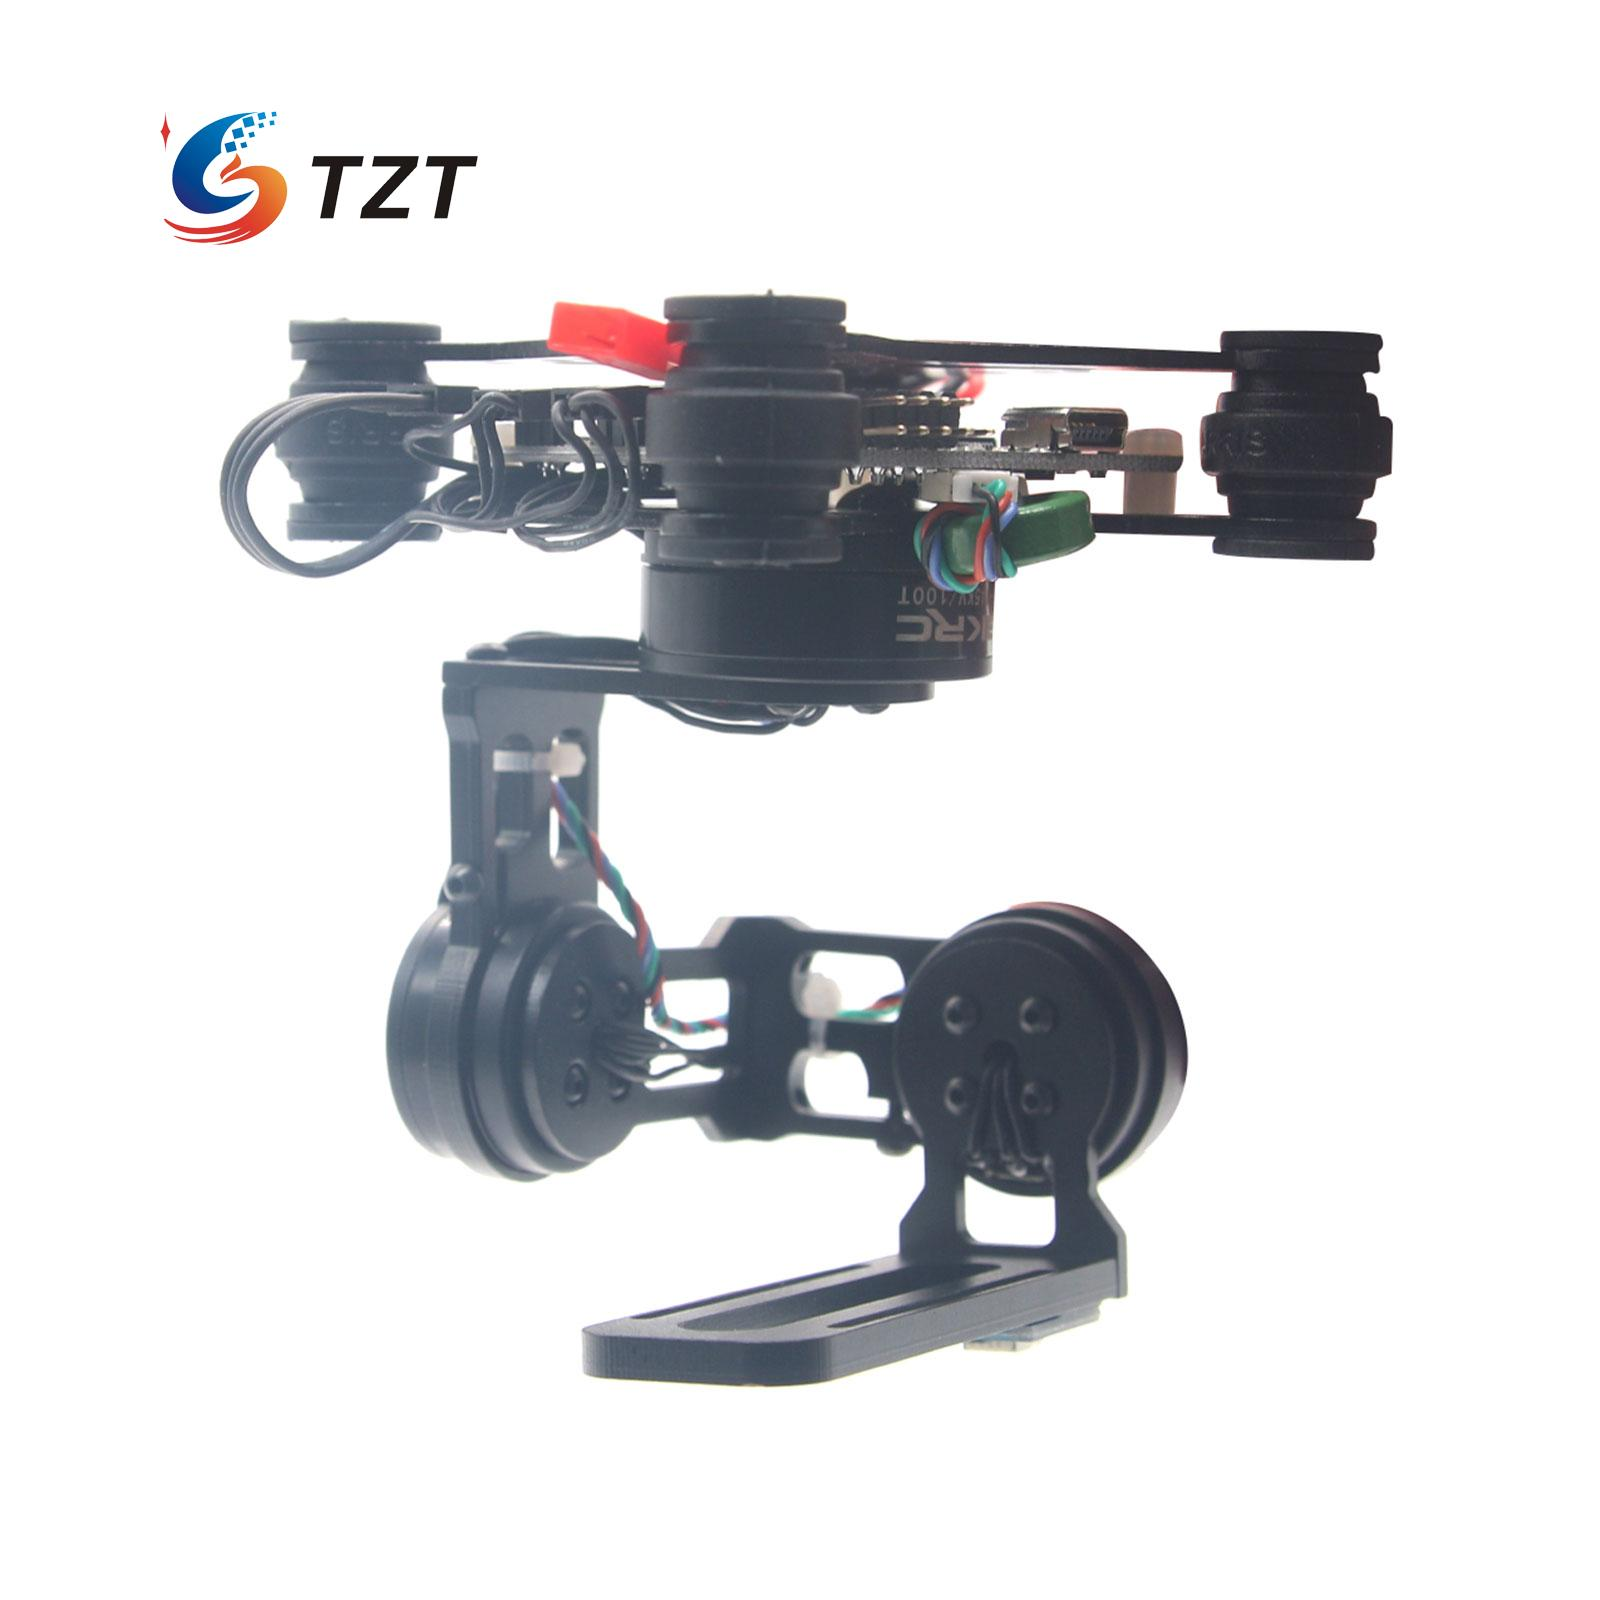 Storm32 FPV 3 Axis Brushless Gimbal Gopro Camera Stabilizer with Motors & Storm32 Controller fpv 3 axis cnc metal brushless gimbal with controller for dji phantom camera drone for gopro 3 4 action sport camera only 180g